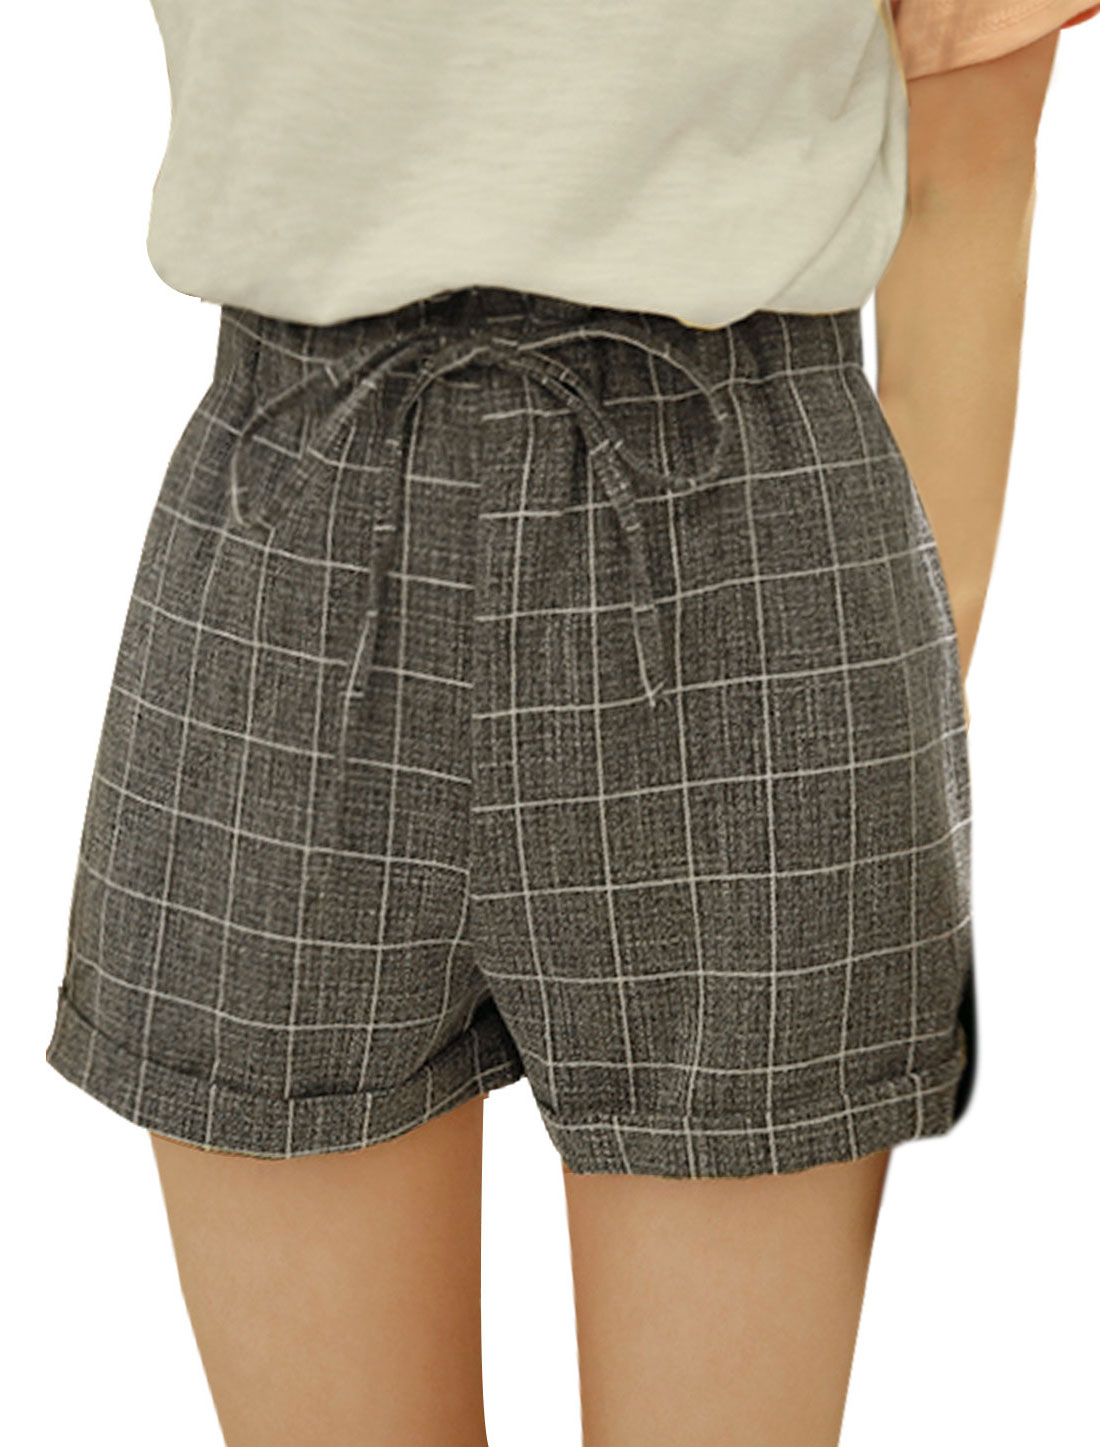 Women Mid Rise Drawstring Waist Checks Casual Shorts Gray XS